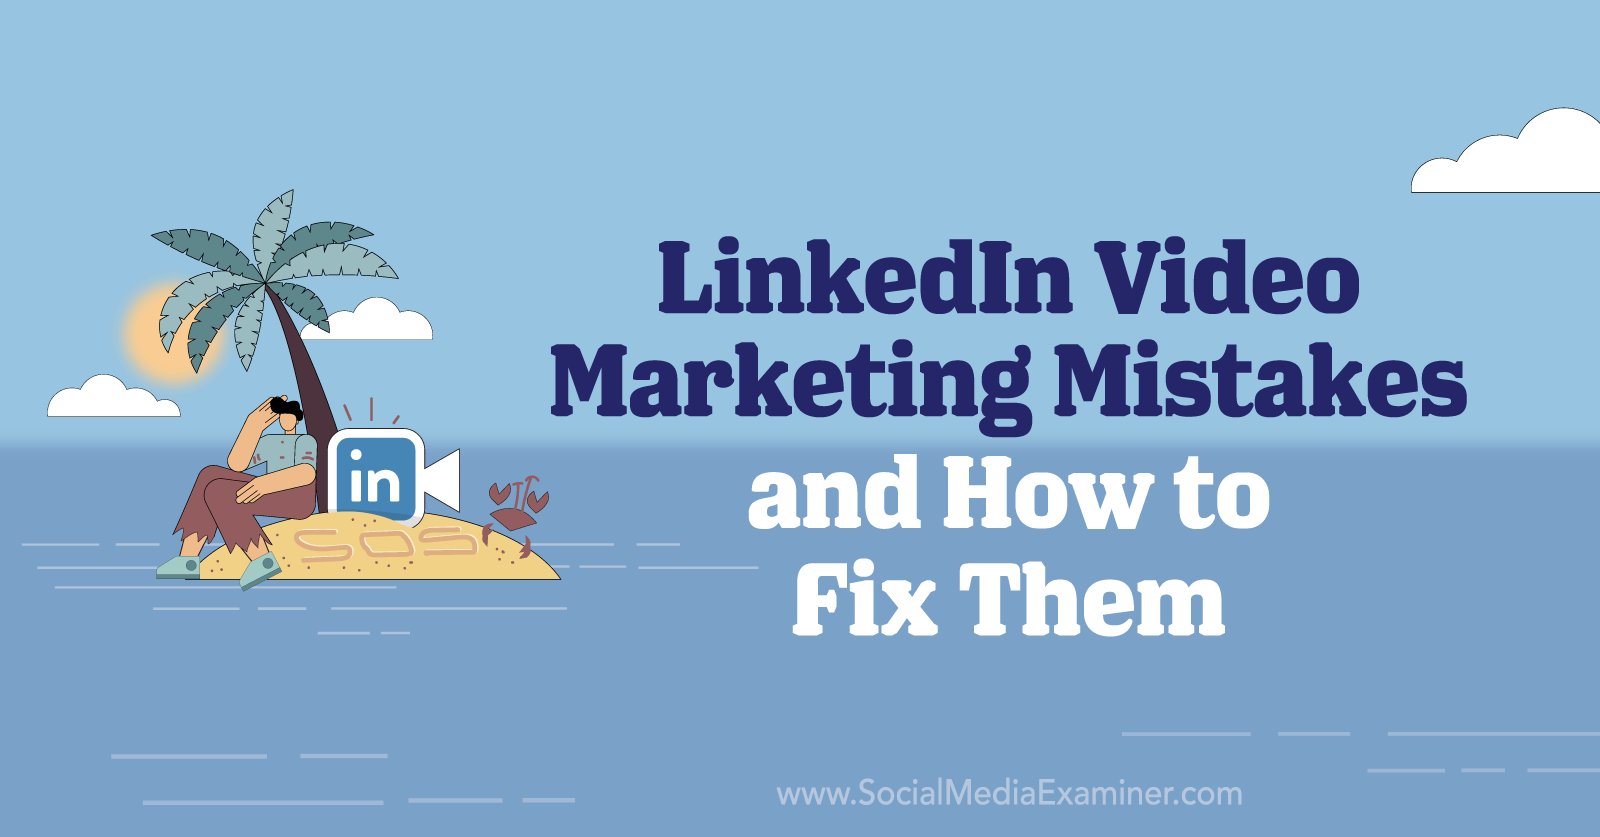 4 LinkedIn Video Marketing Mistakes and How to Fix Them by Elizabeth Shydlovich on Social Media Examiner.